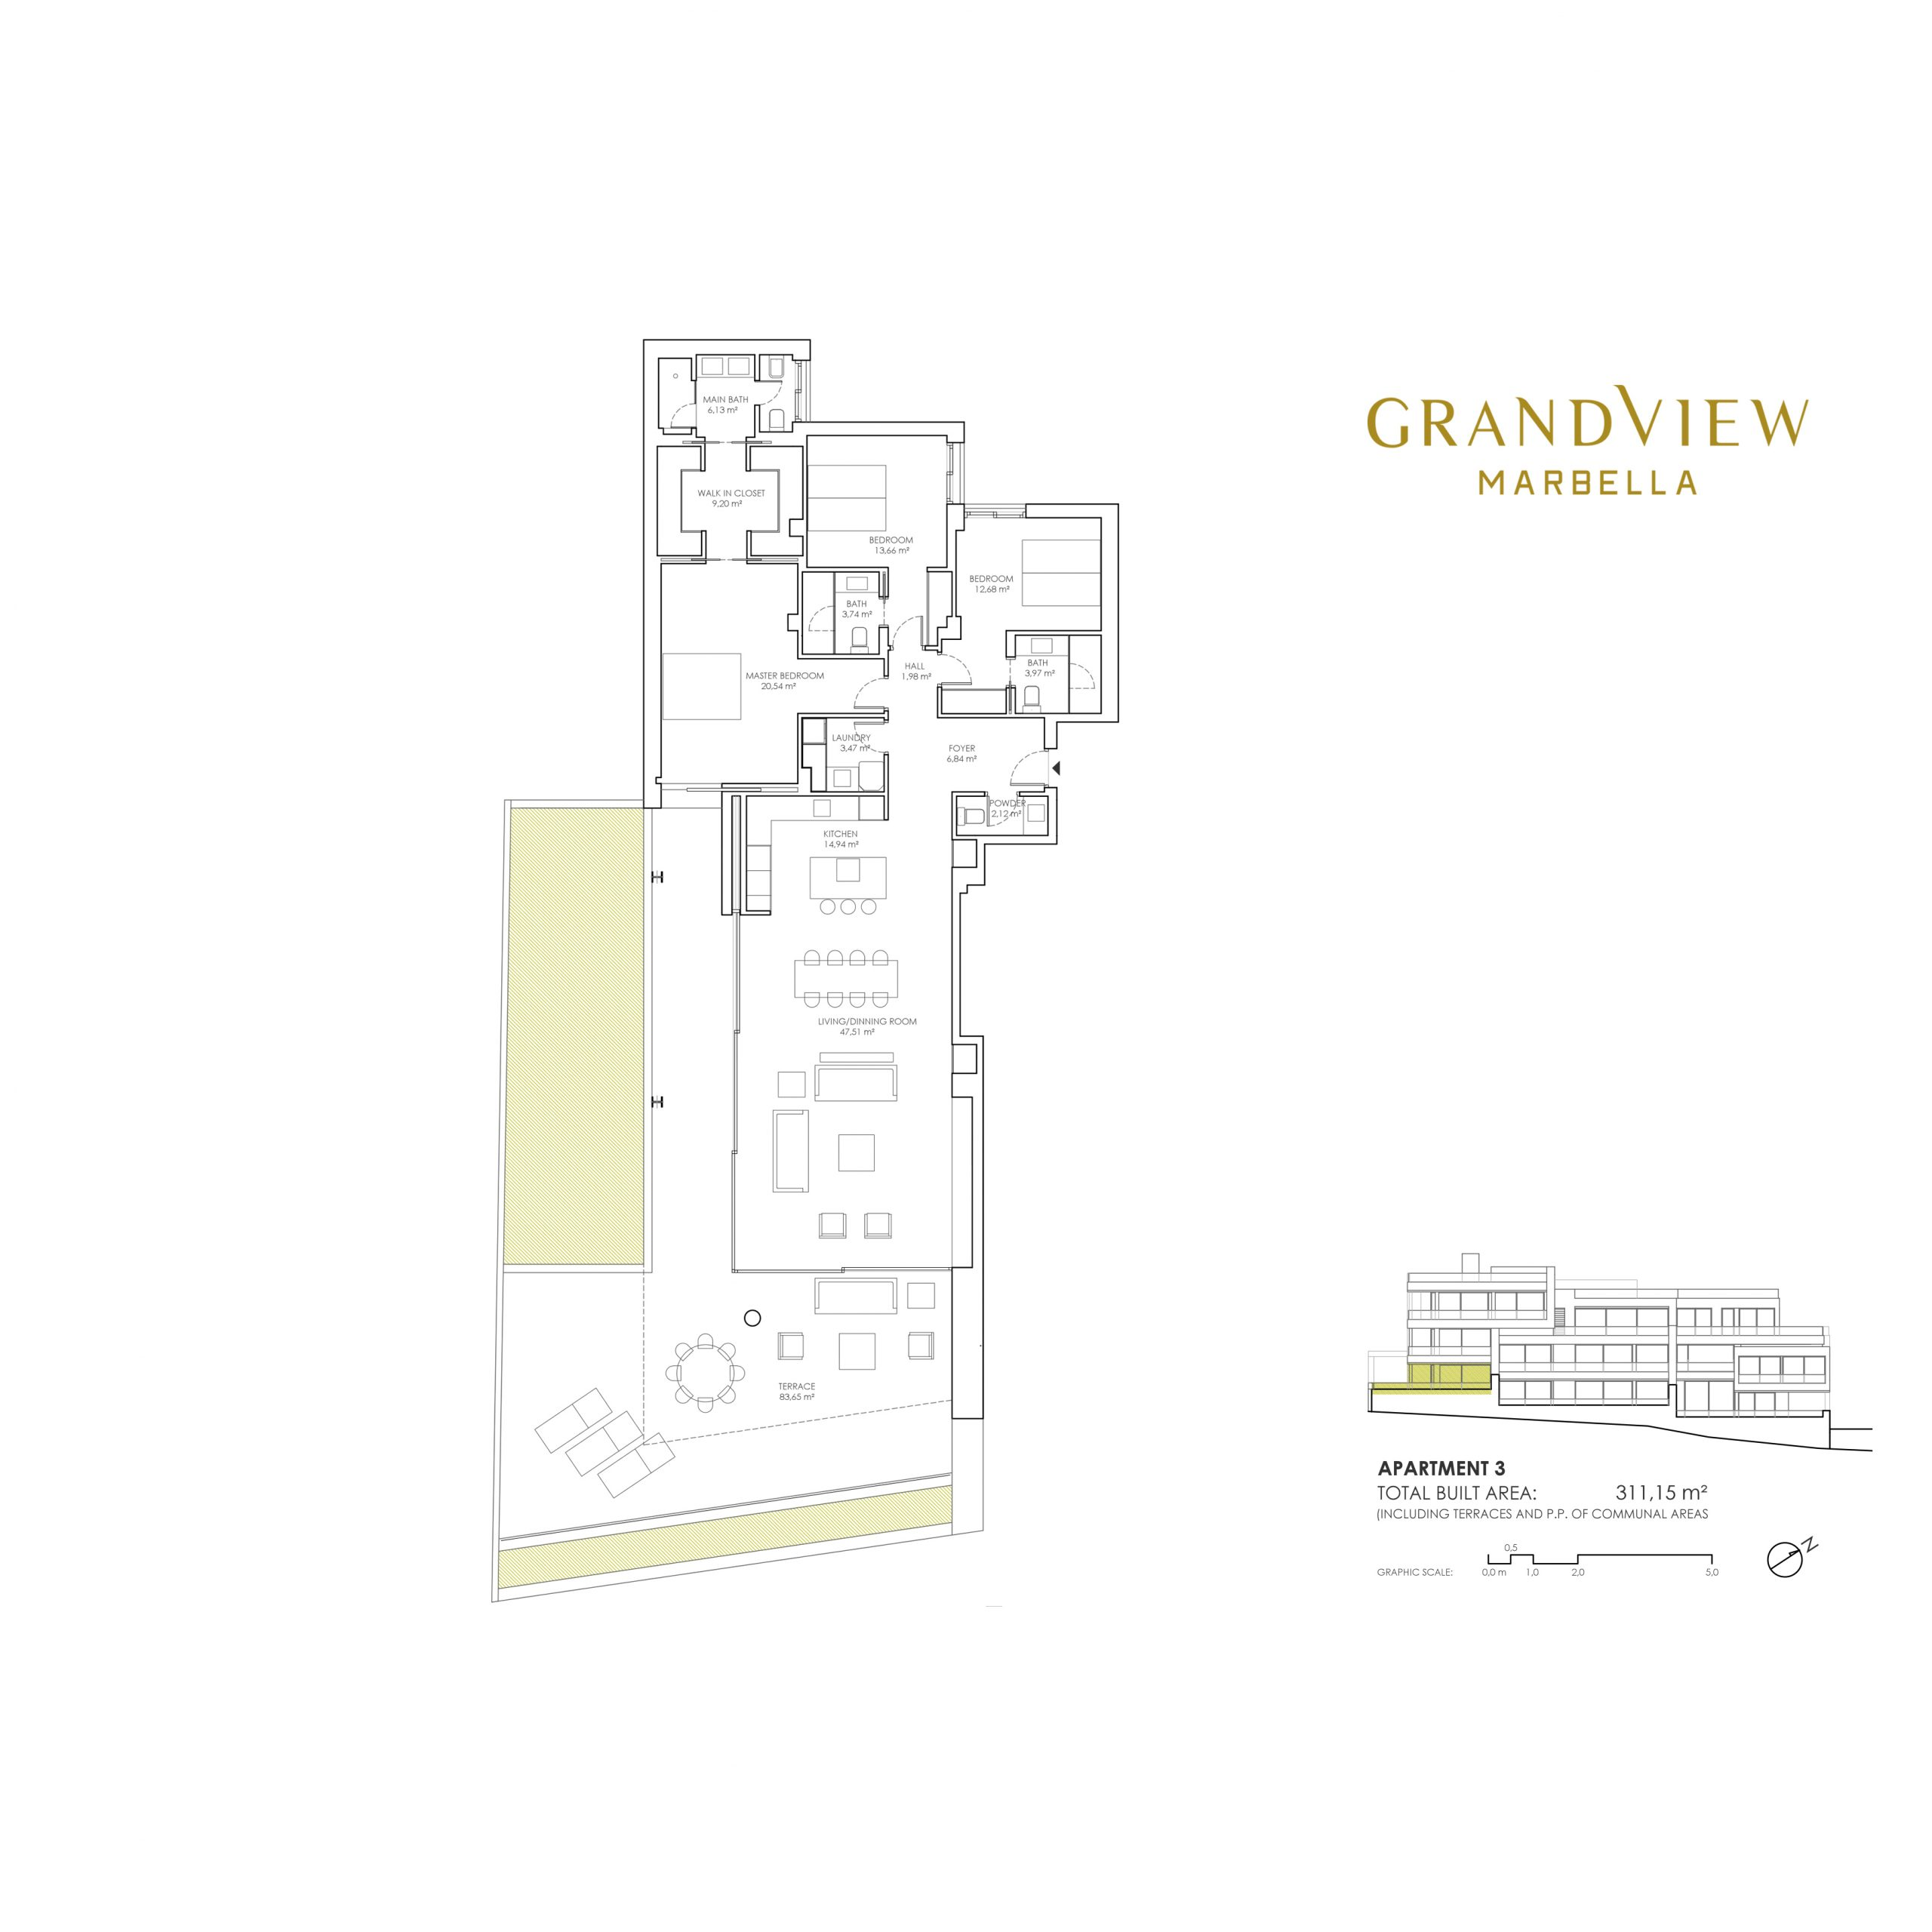 Grand View Marbella Apartment 3 floorplan